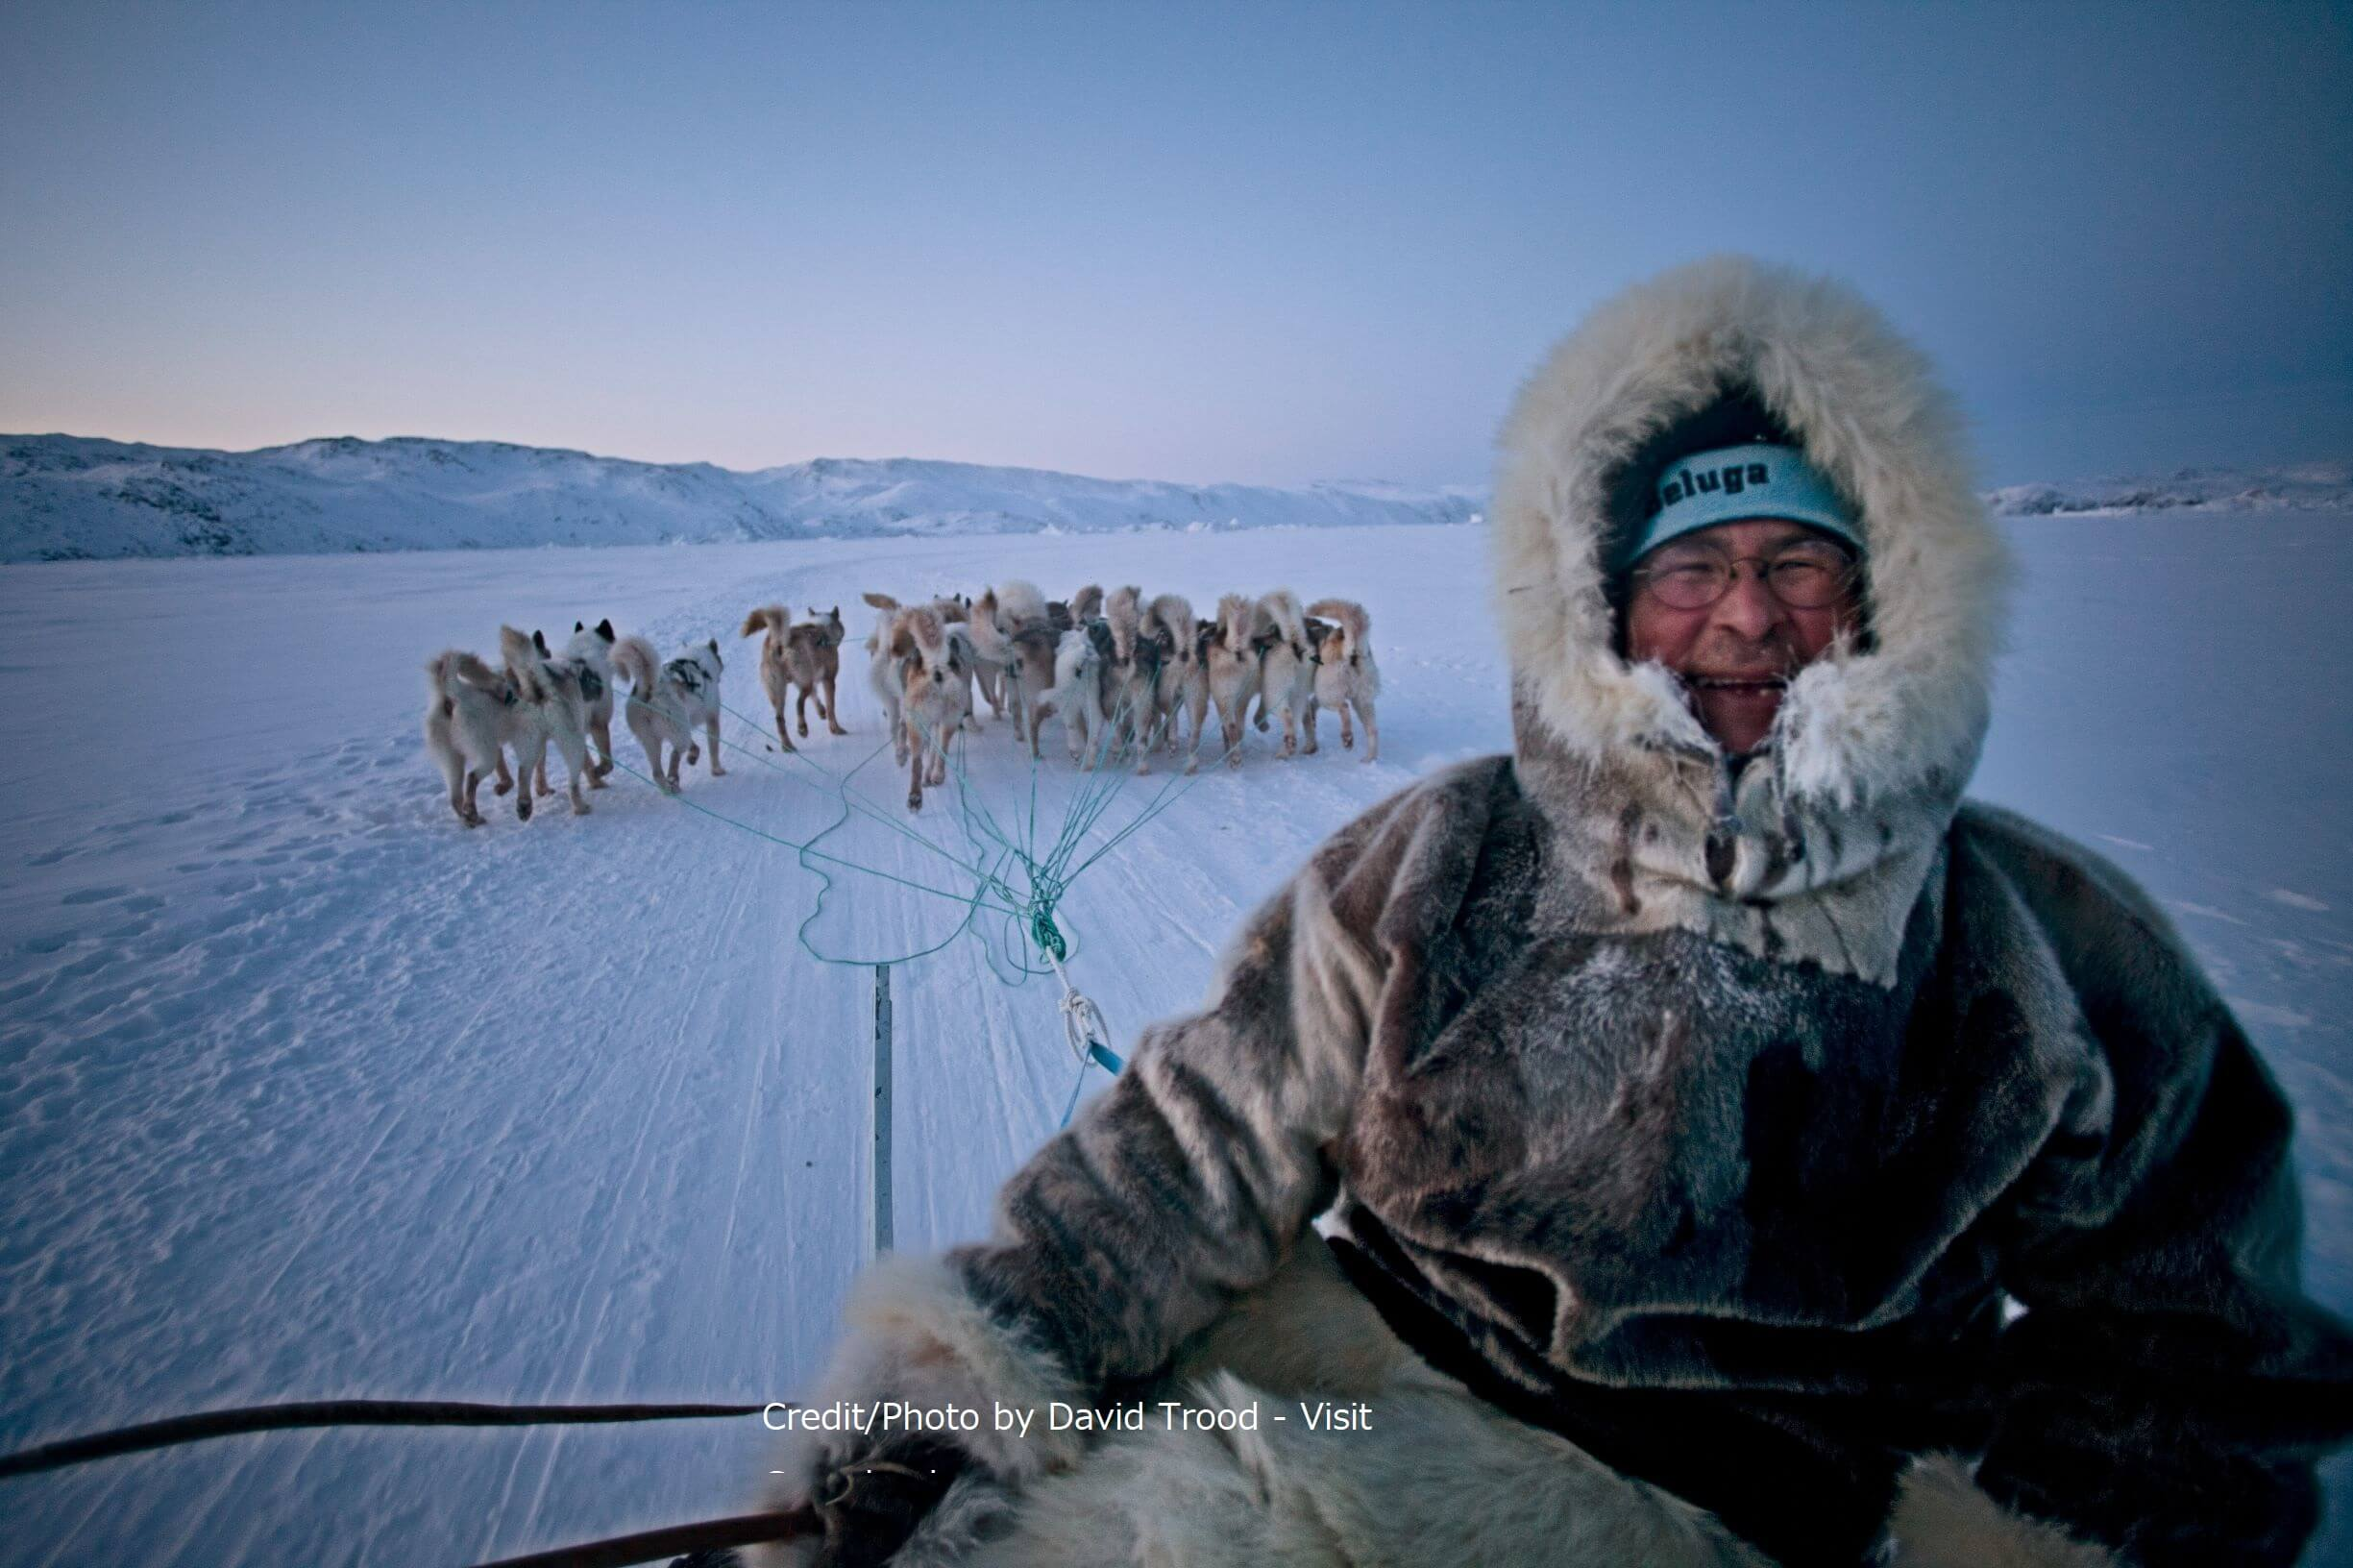 A portrait of a happy dog sled driver enjoying the winter cold on the trail near Ilulissat in Greenland's Disko Bay